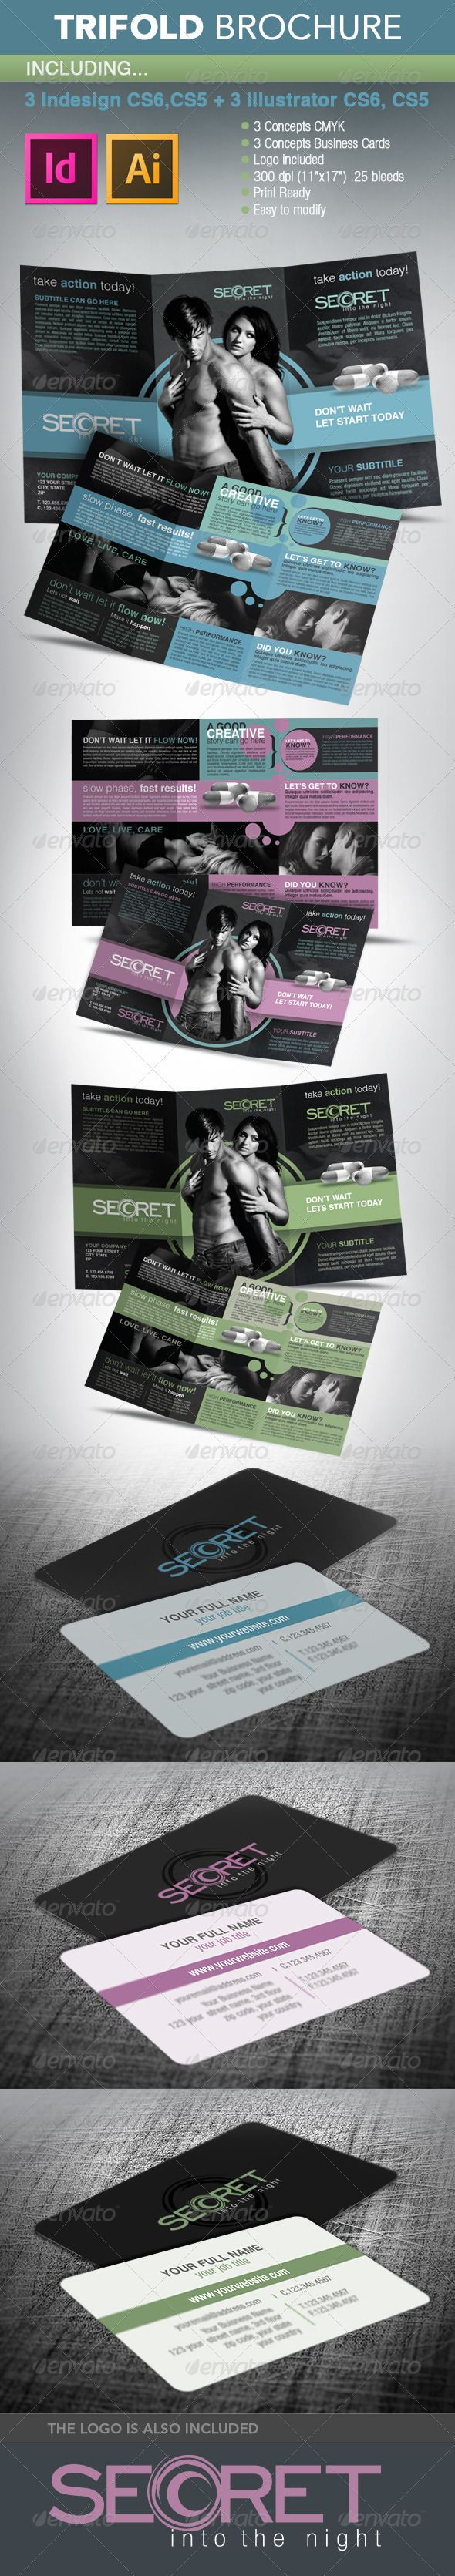 115 best # Trifold Brochure Templates Designs images on Pinterest ...